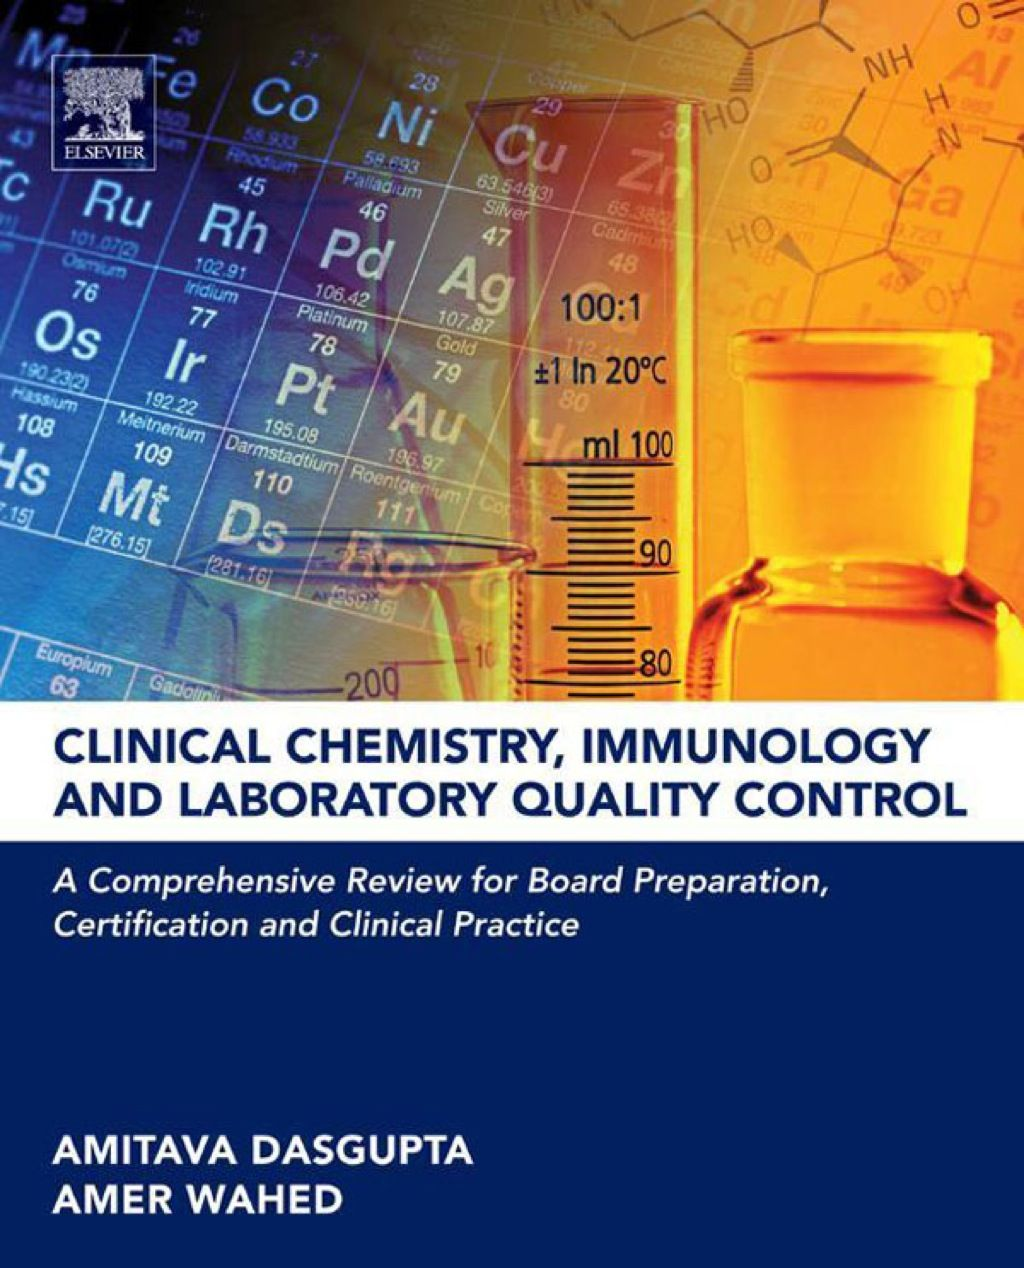 Clinical Chemistry Immunology and Laboratory Quality